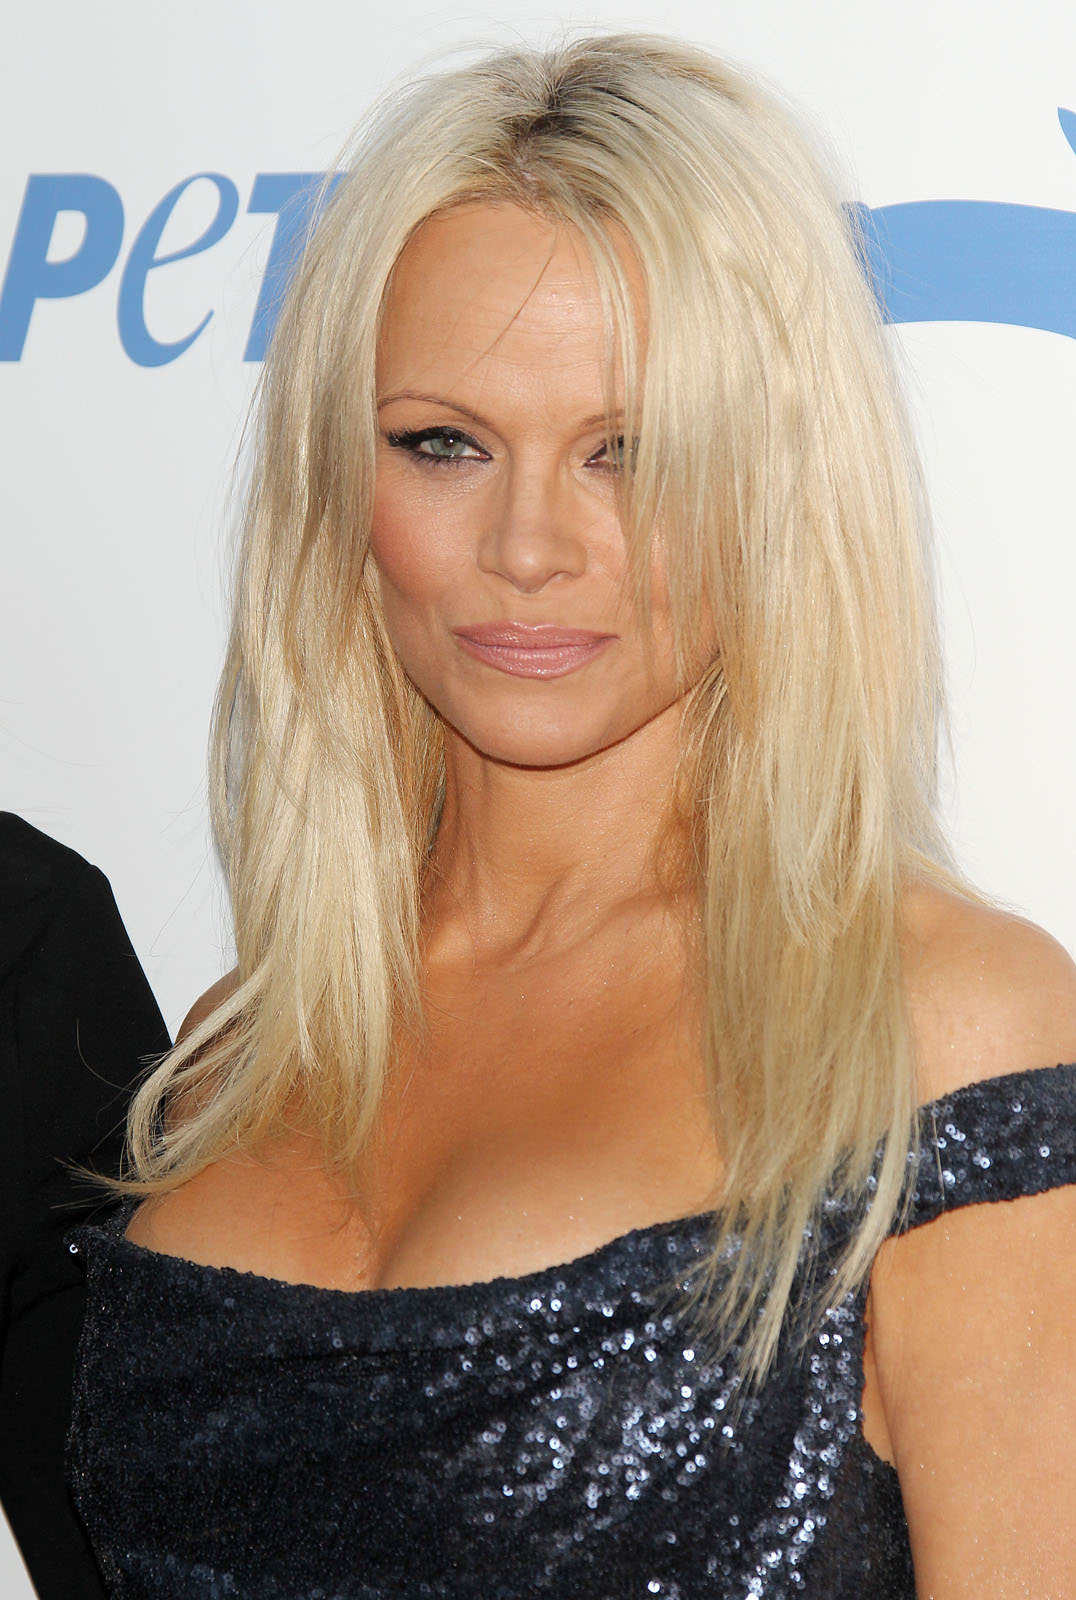 Pamela Anderson Photo Gallery